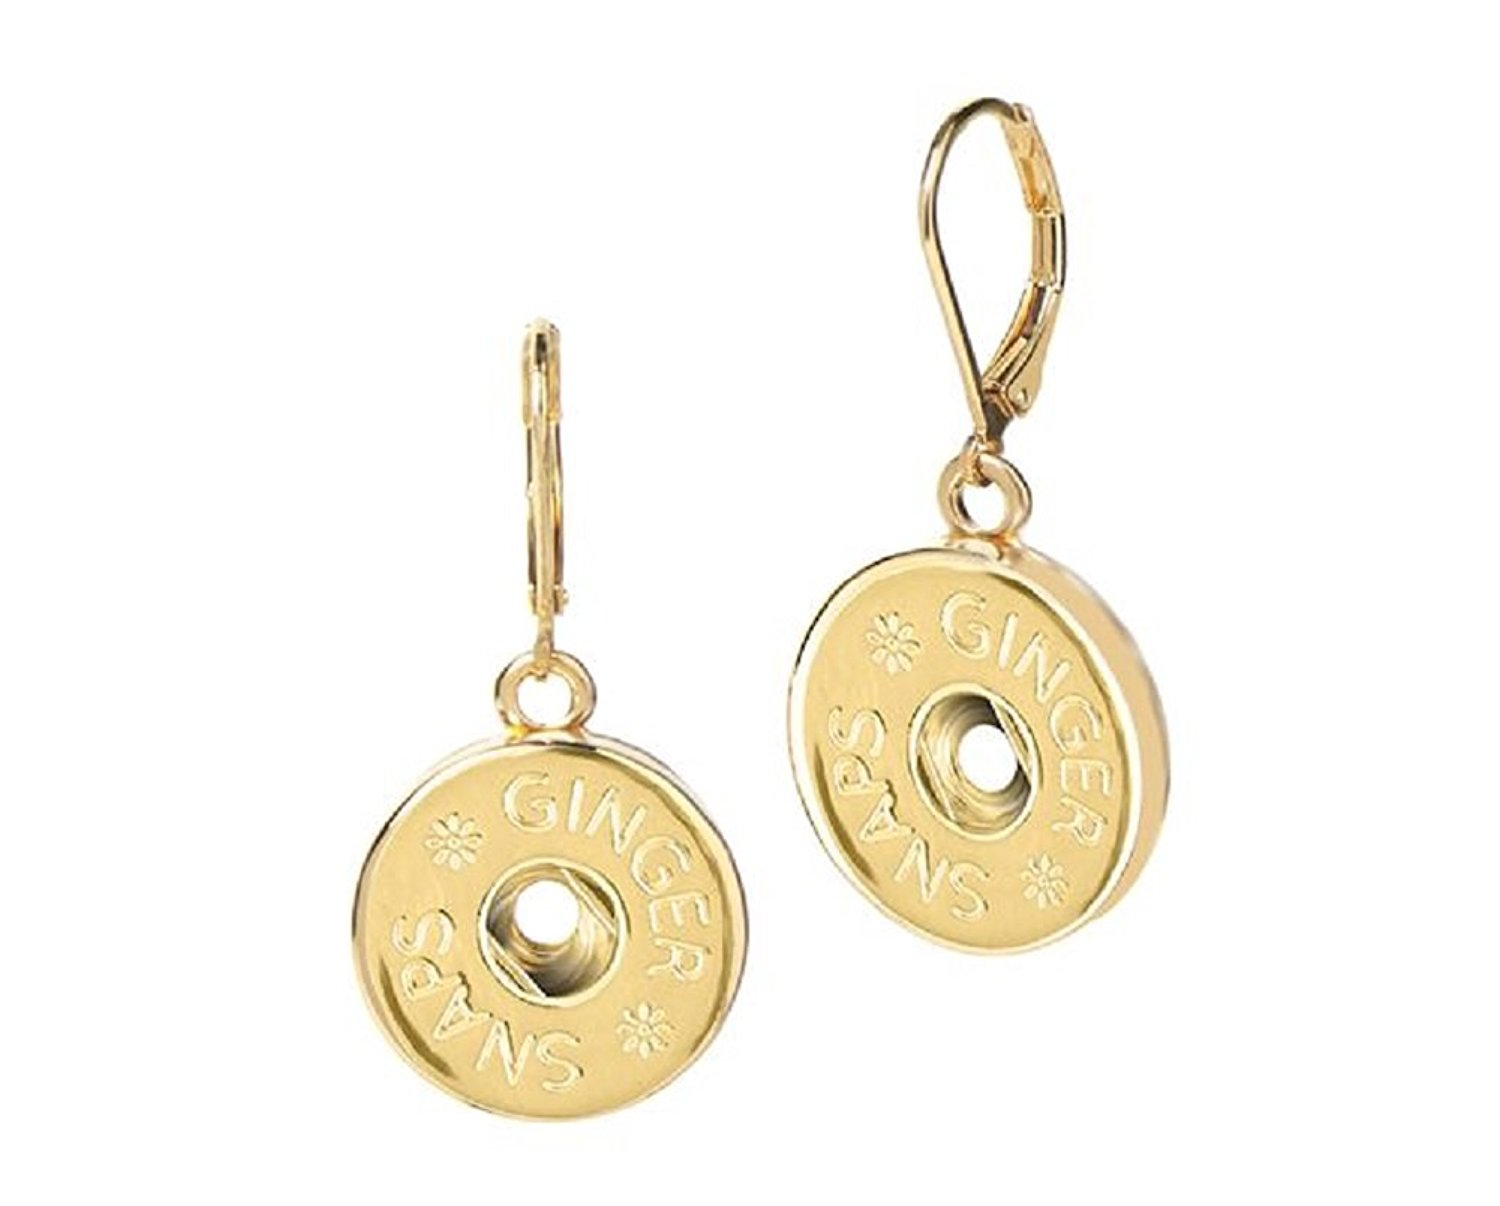 Ginger Snaps (Simulated) Gold Leverback Earrings (Standard Size) SN95-99 Interchangeable Jewelry